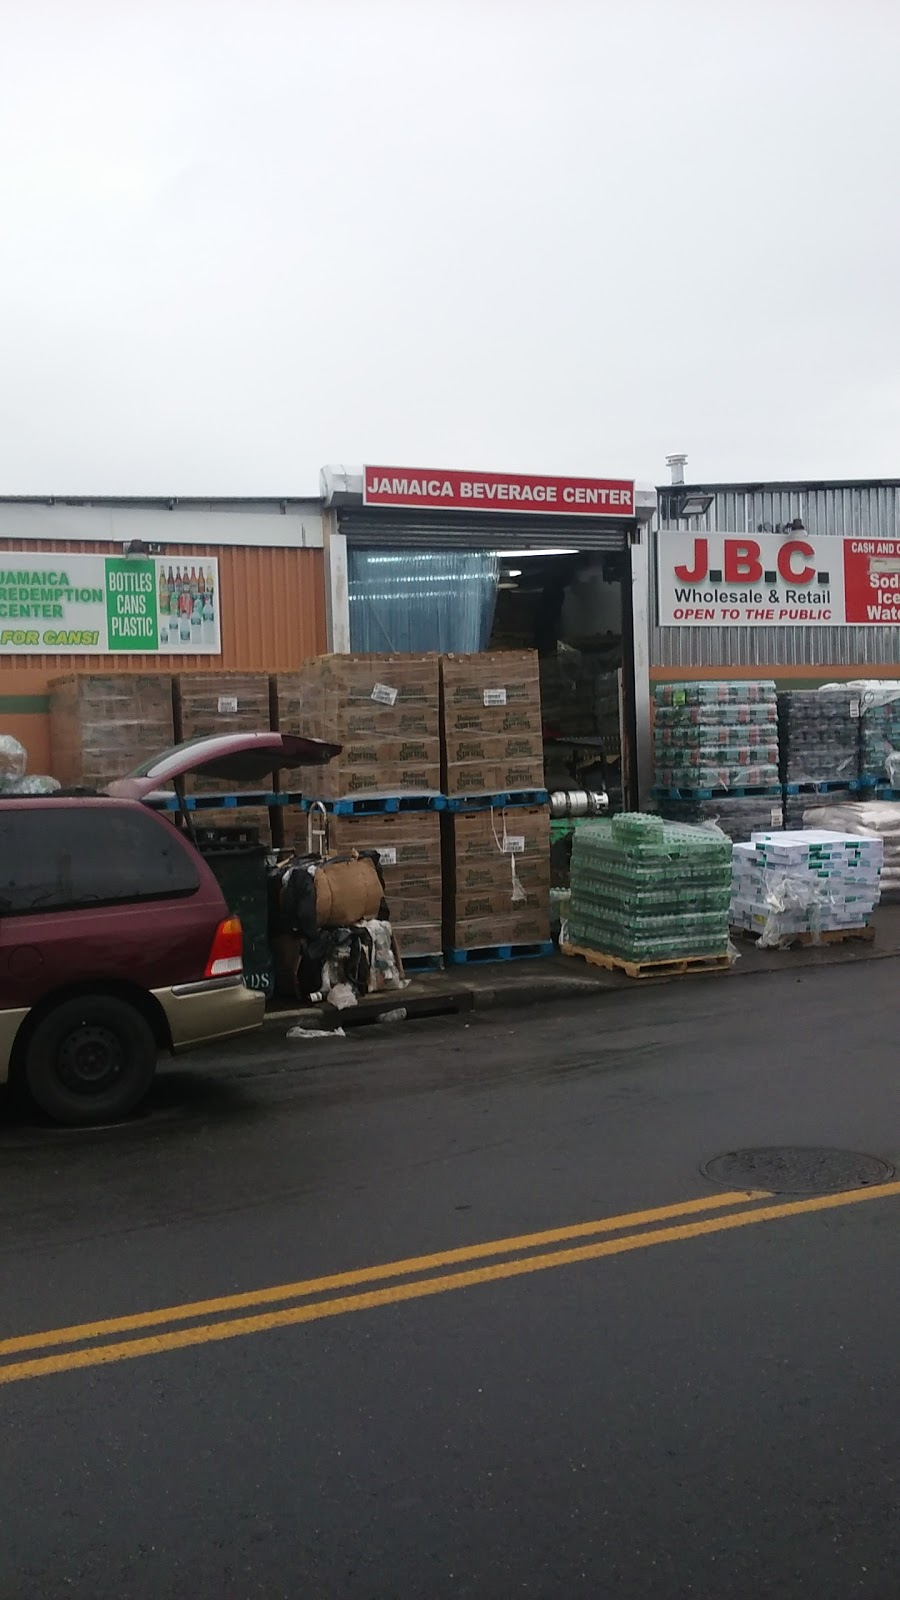 Jamaica Redemption Center - store  | Photo 1 of 2 | Address: 203-07 Linden Blvd, Jamaica, NY 11412, USA | Phone: (718) 525-4283